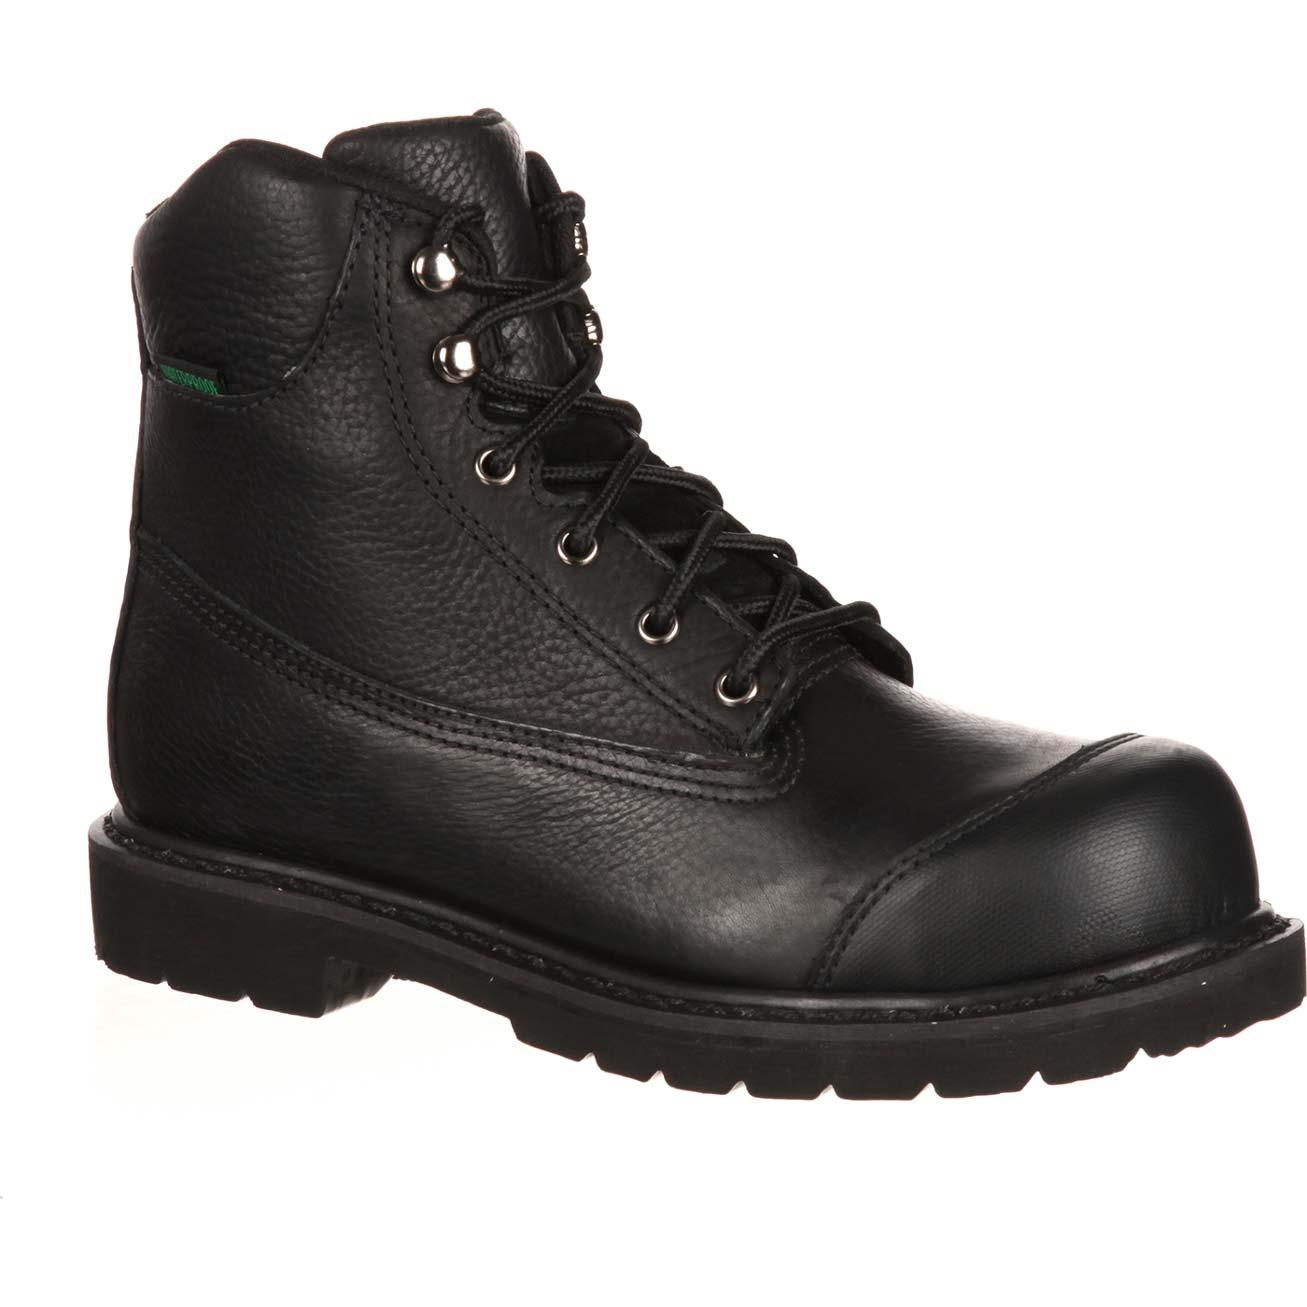 019474b661a6 QUICKFIT COLLECTION  Lehigh Safety Shoes Unisex Steel Toe Waterproof Work  Shoe